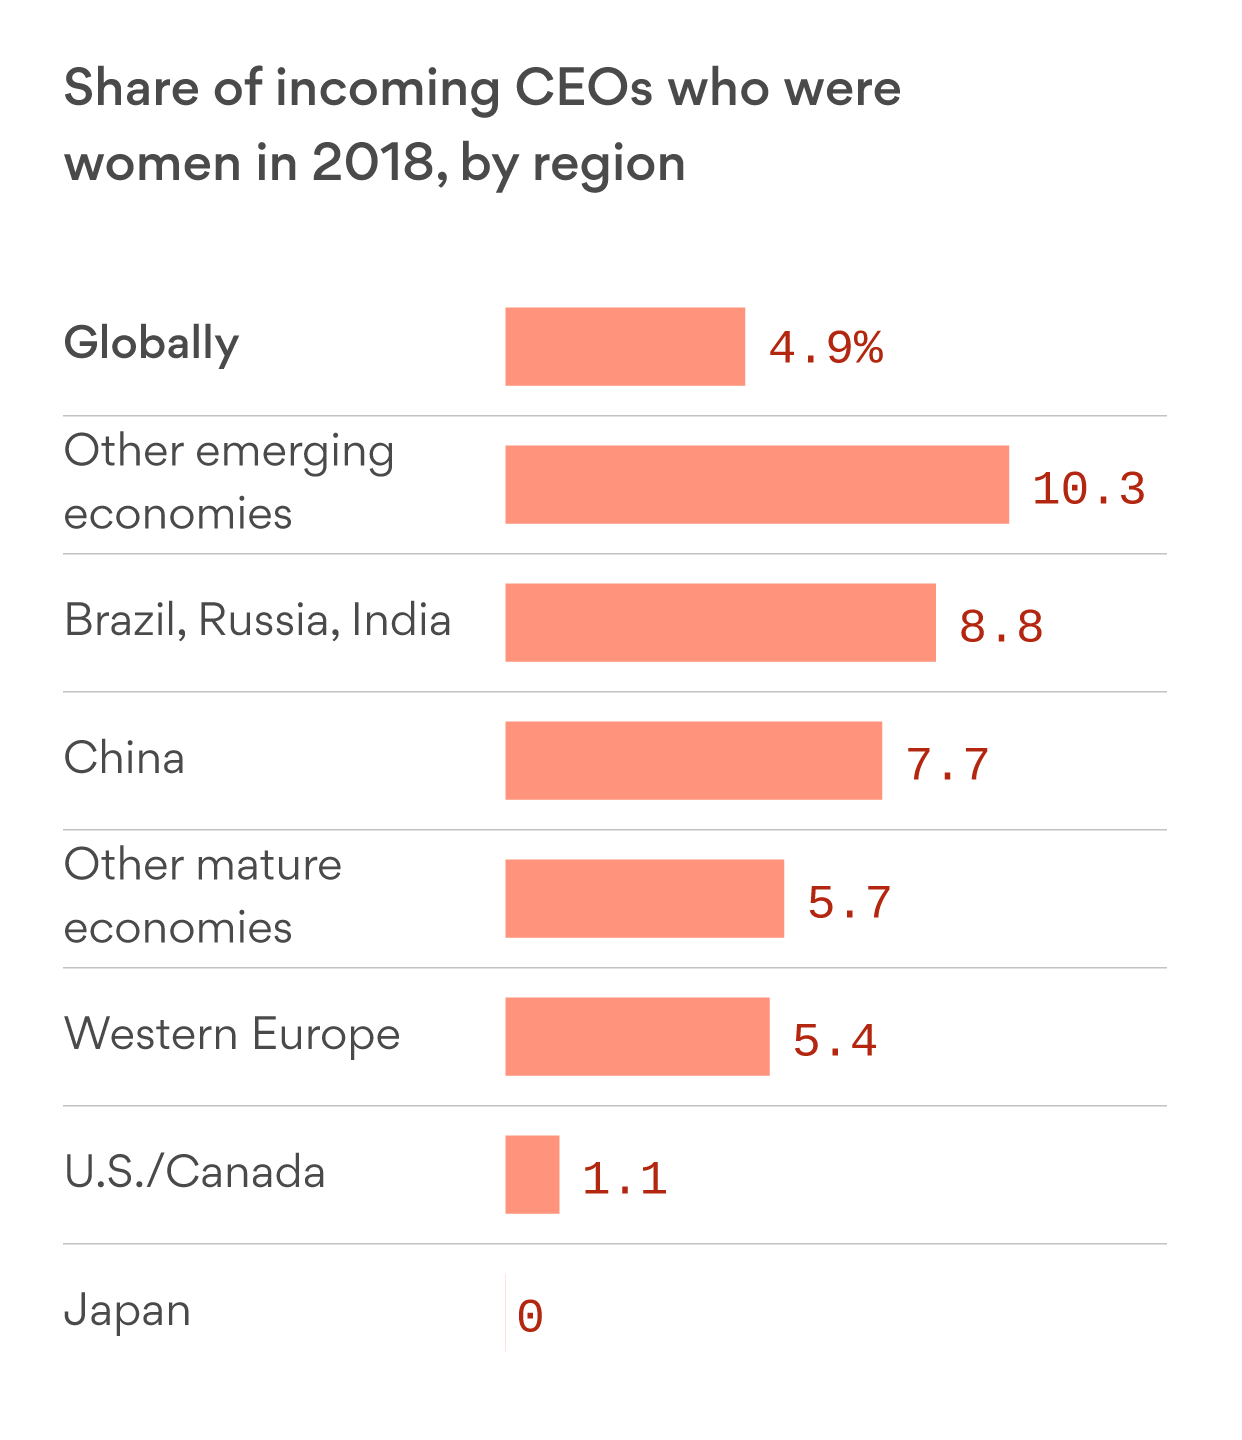 The U.S. lagged behind the rest of the world in hiring women CEOs in 2018